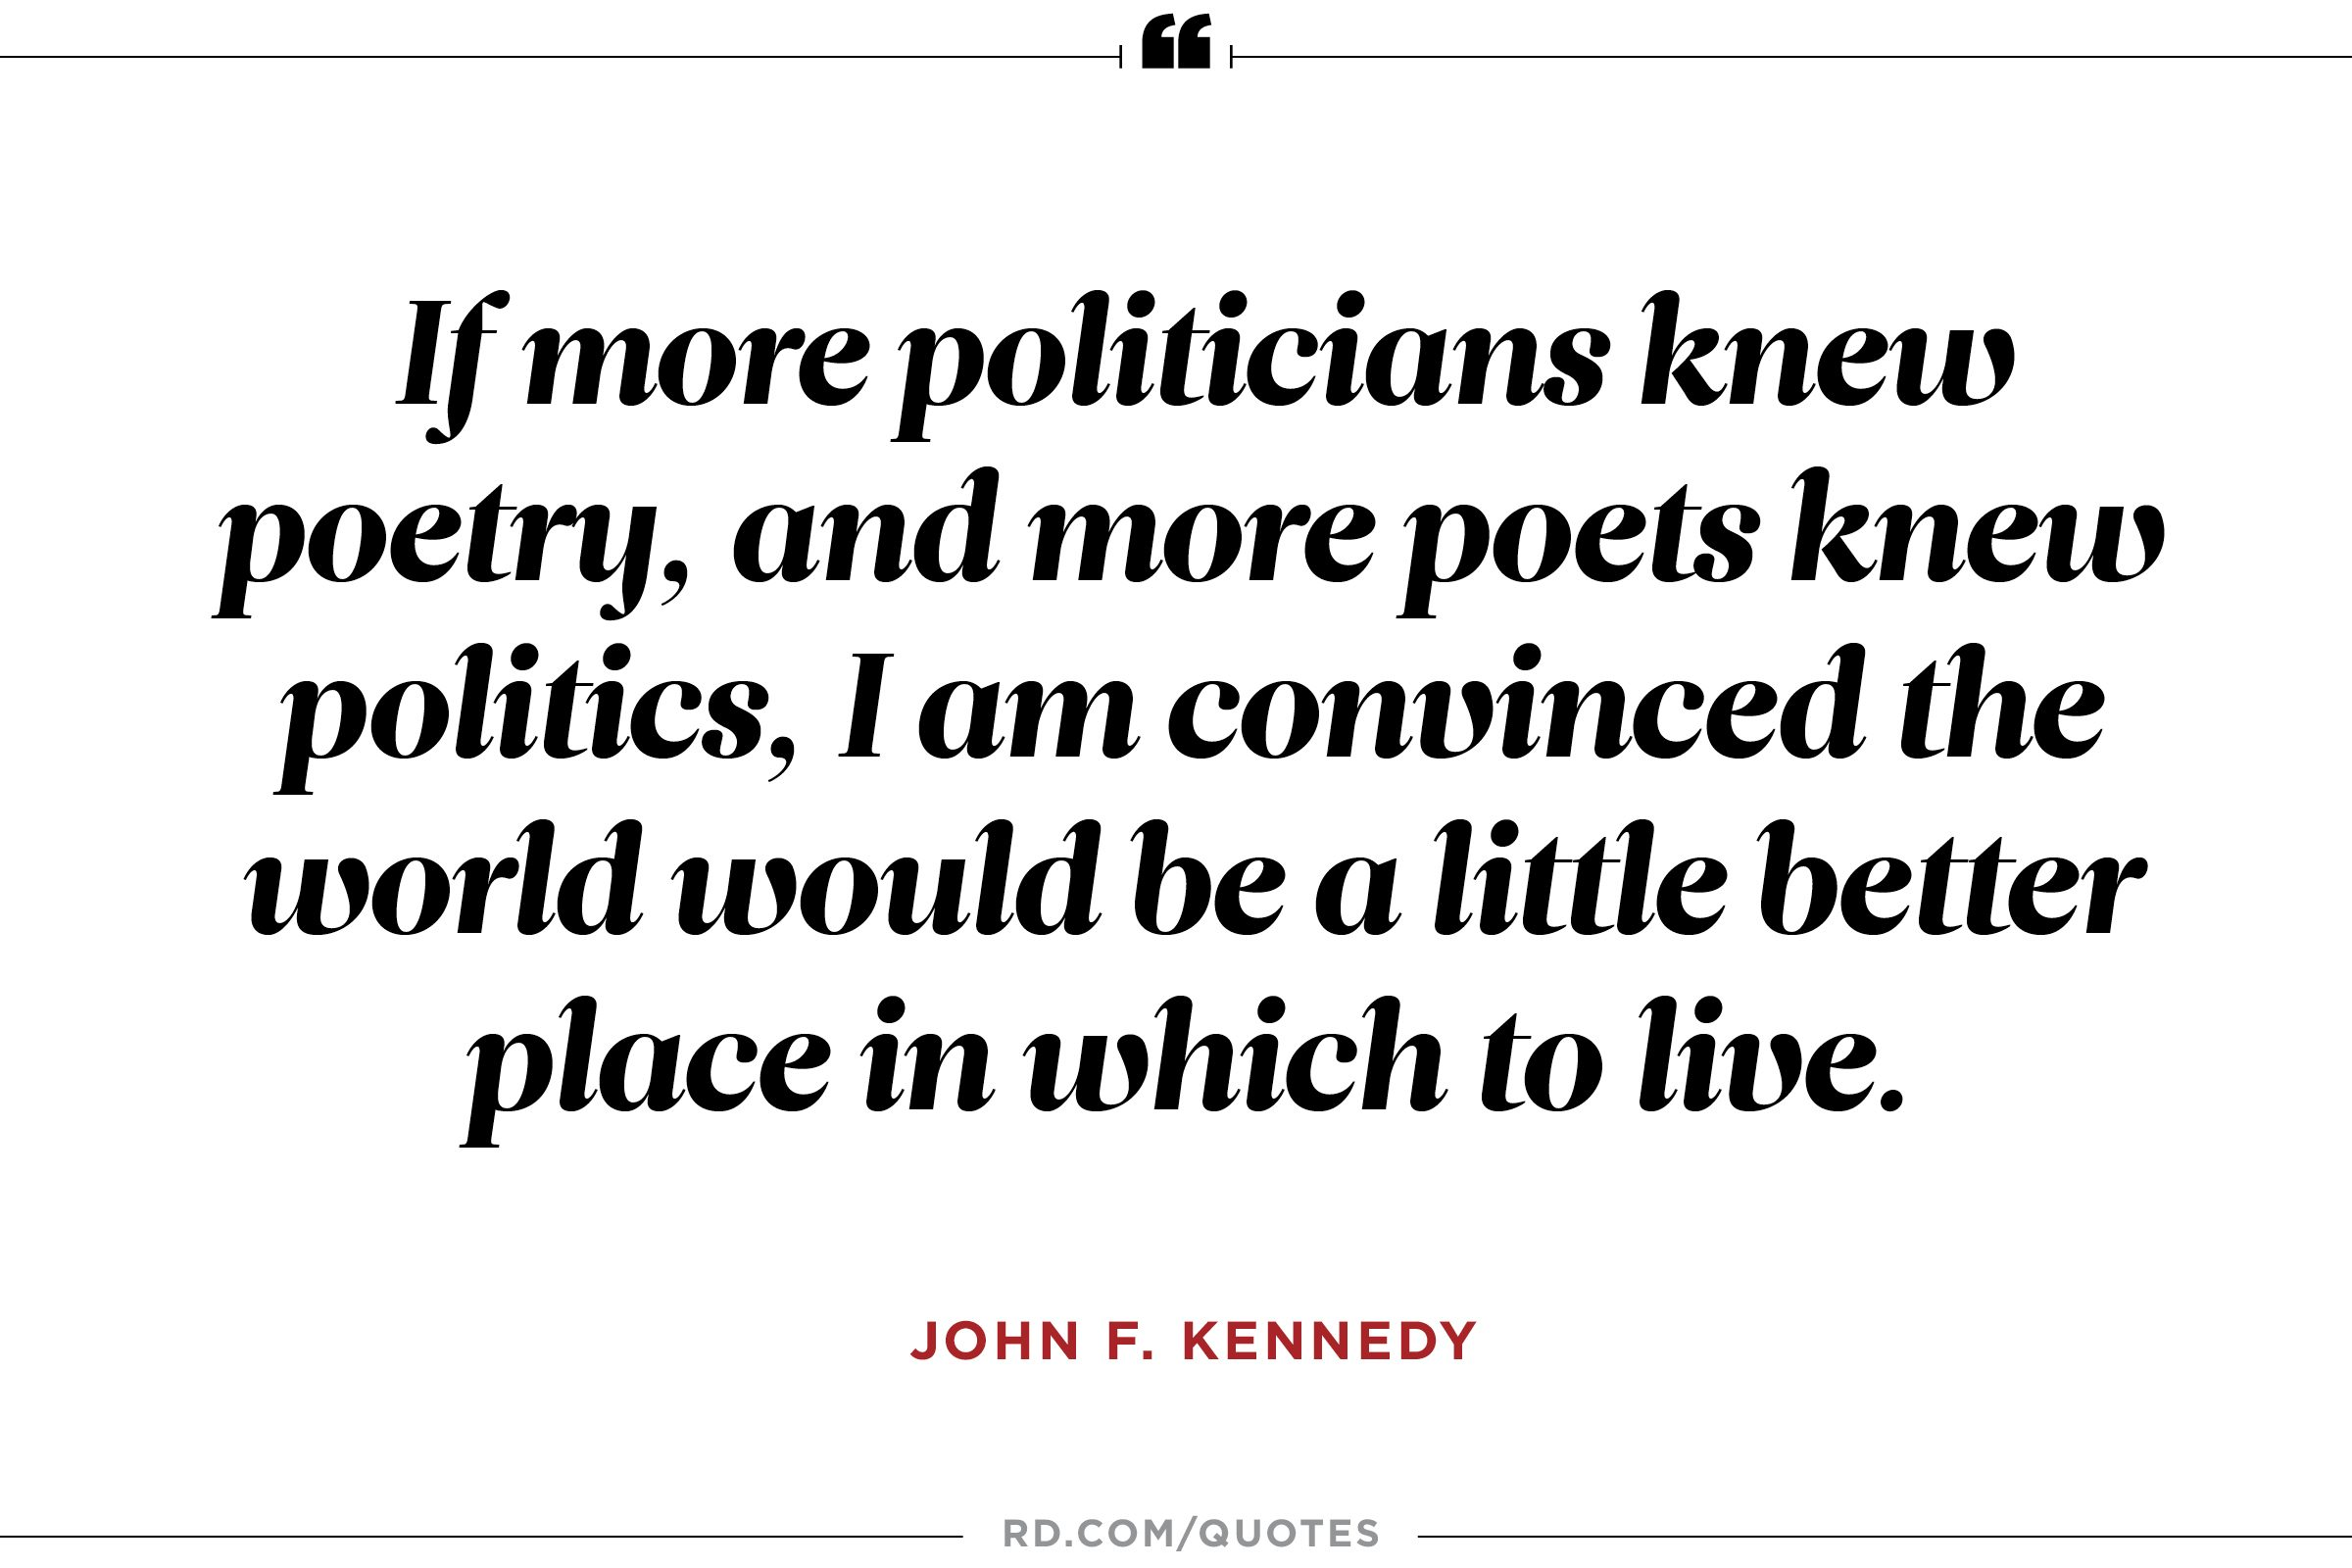 JFK on politics and poetry